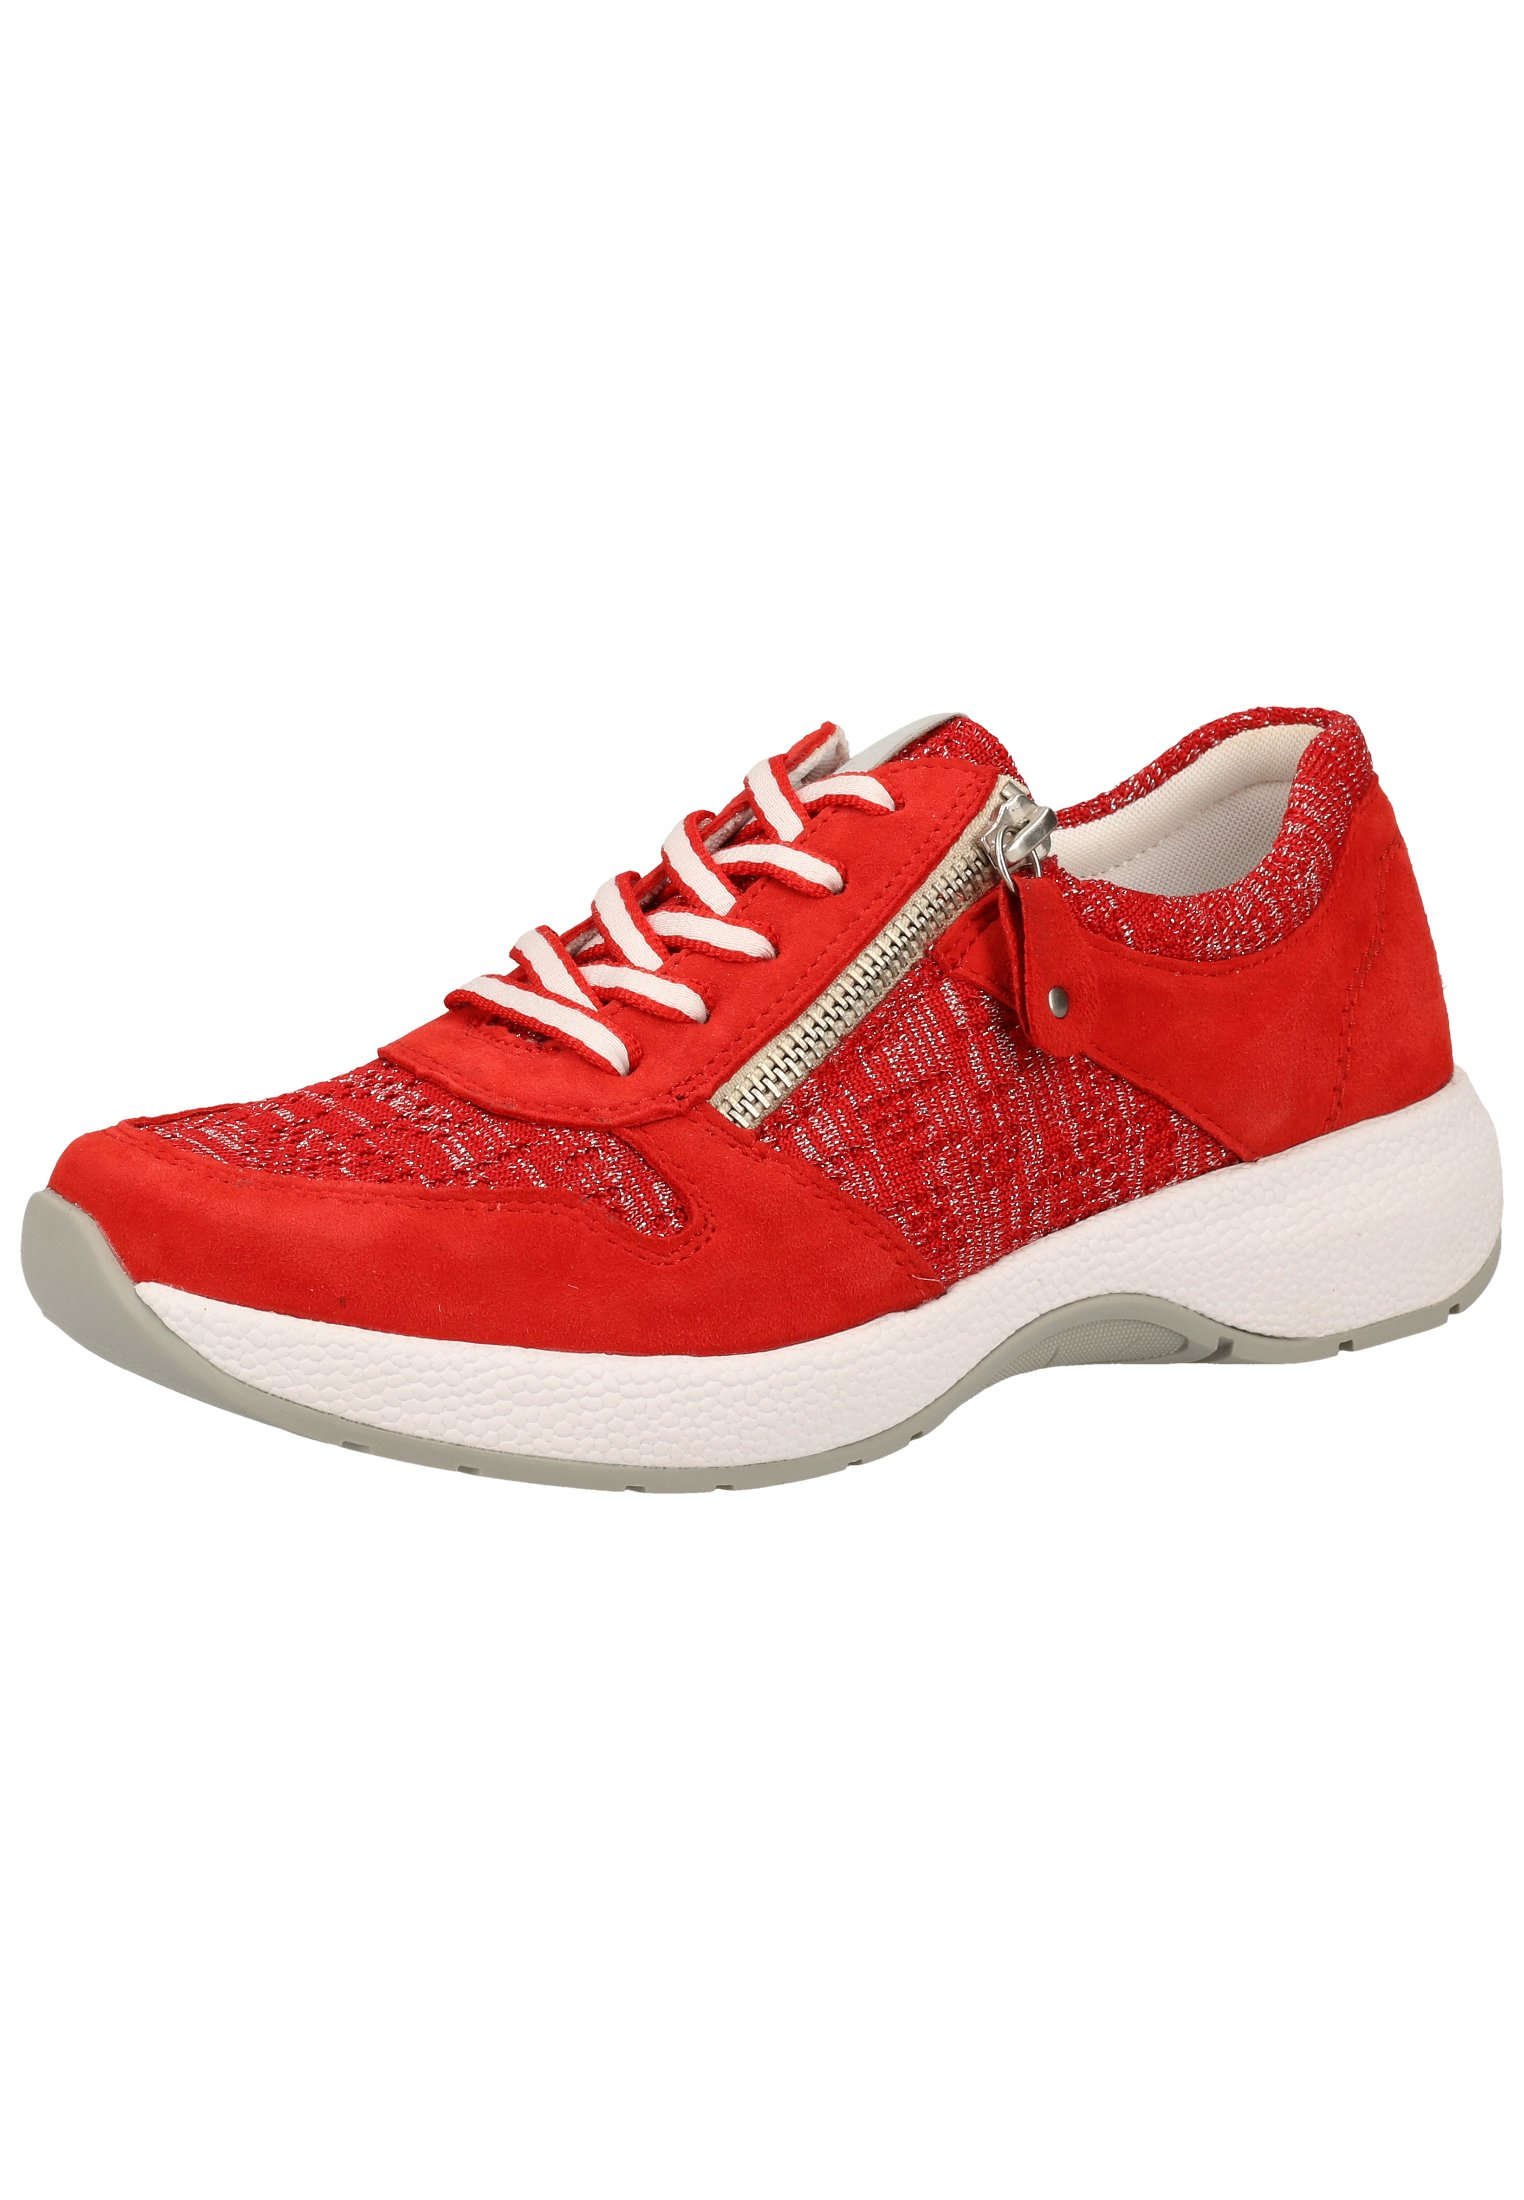 Remonte Sneakers - Red